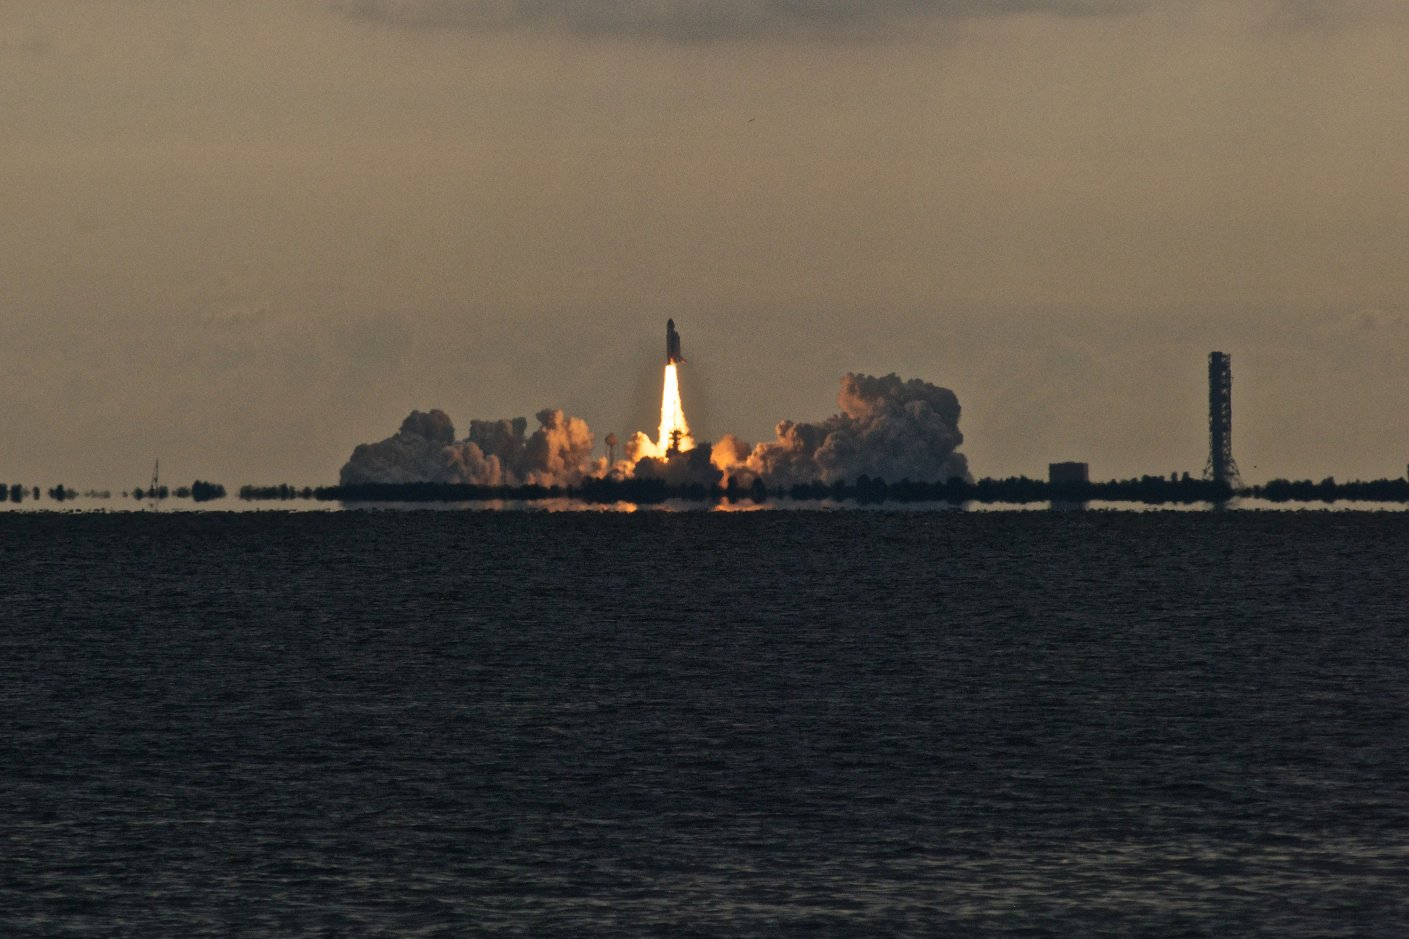 space shuttle launch today live - photo #22